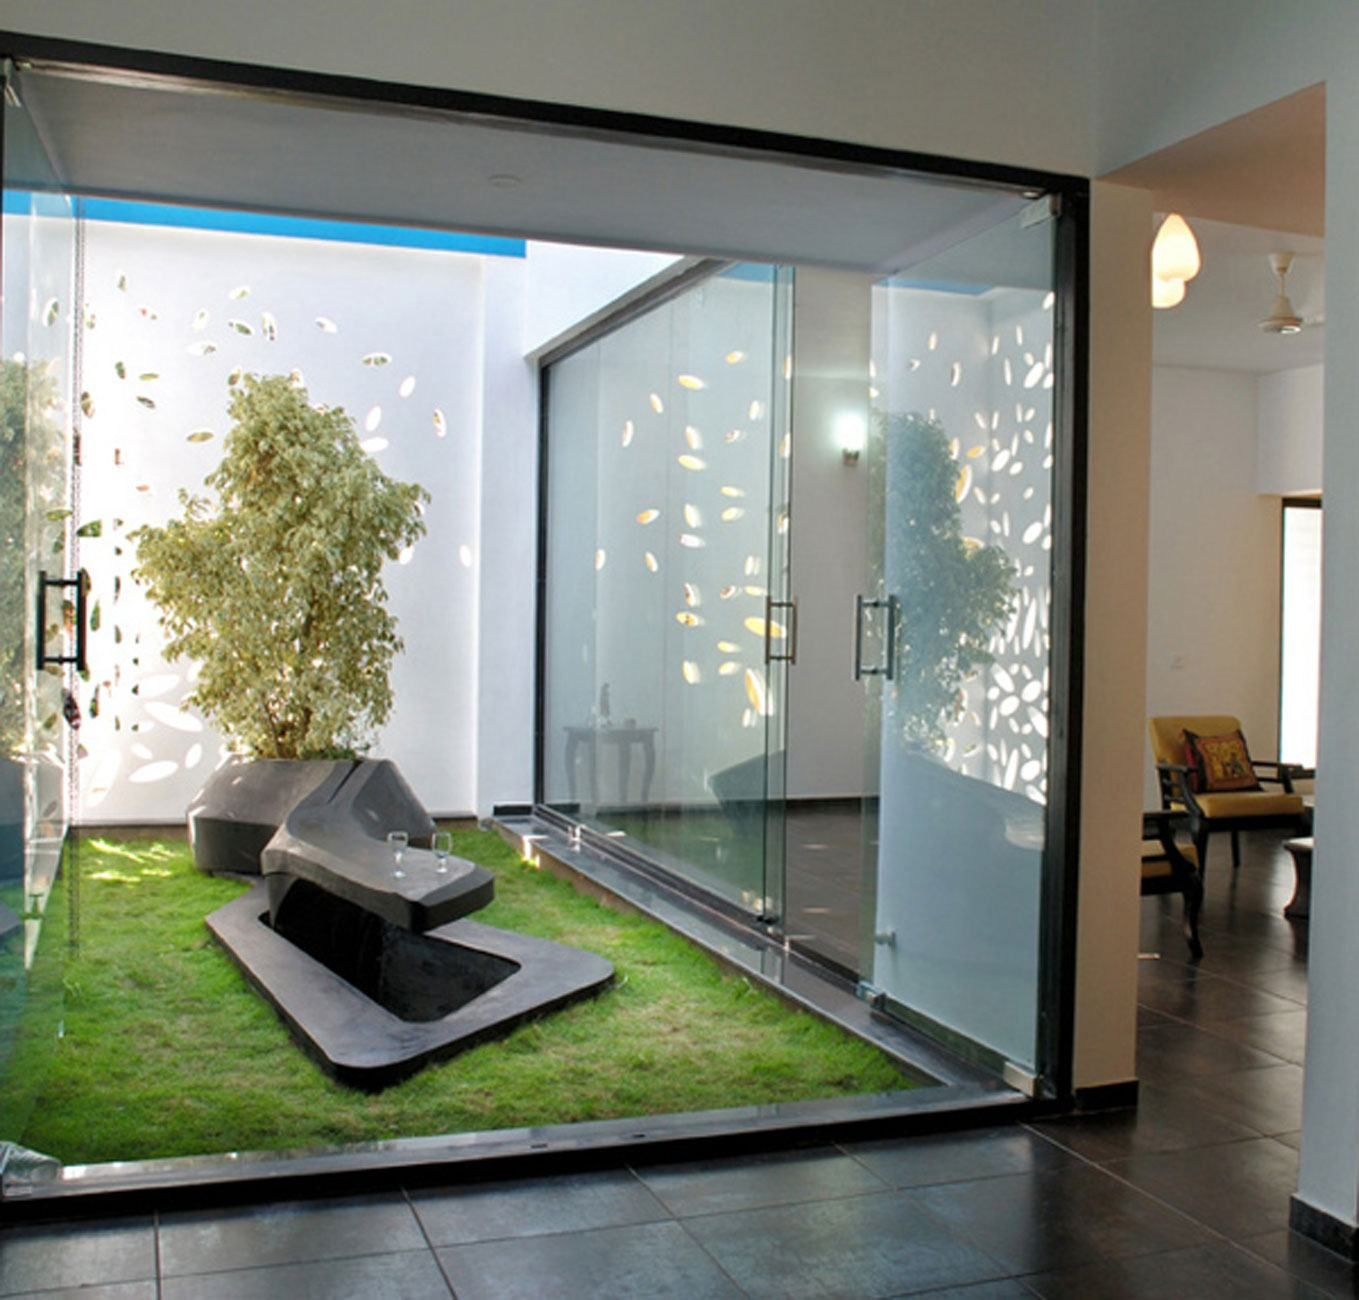 Home designs gallery amazing interior garden with modern for Indoor design in home